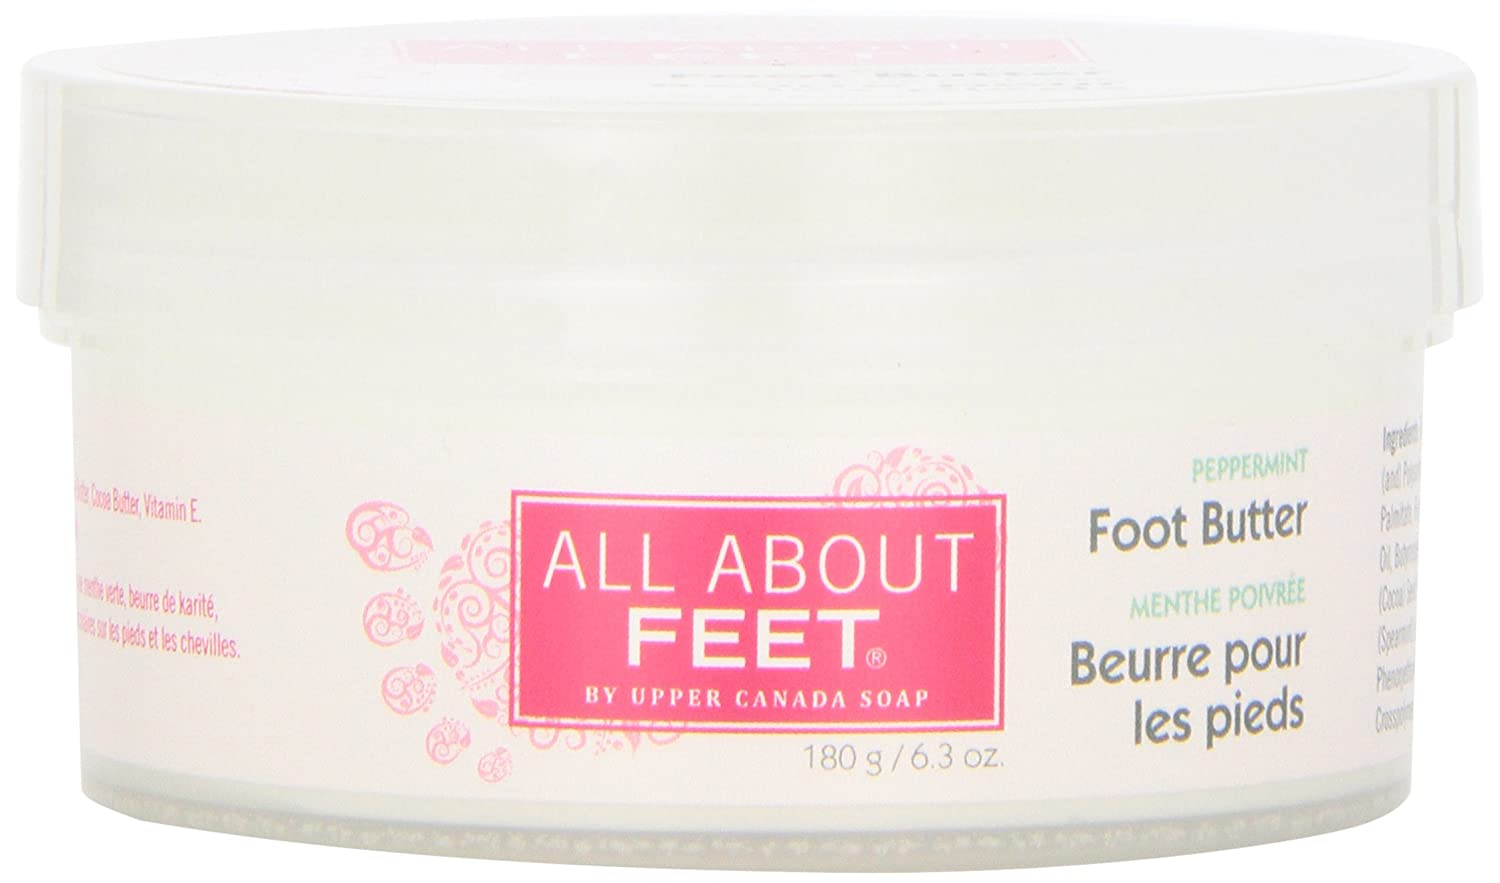 Upper Canada Soap and Candle All About Feet Peppermint Massaging Foot Butter, 6.3-Ounce Jars 602431